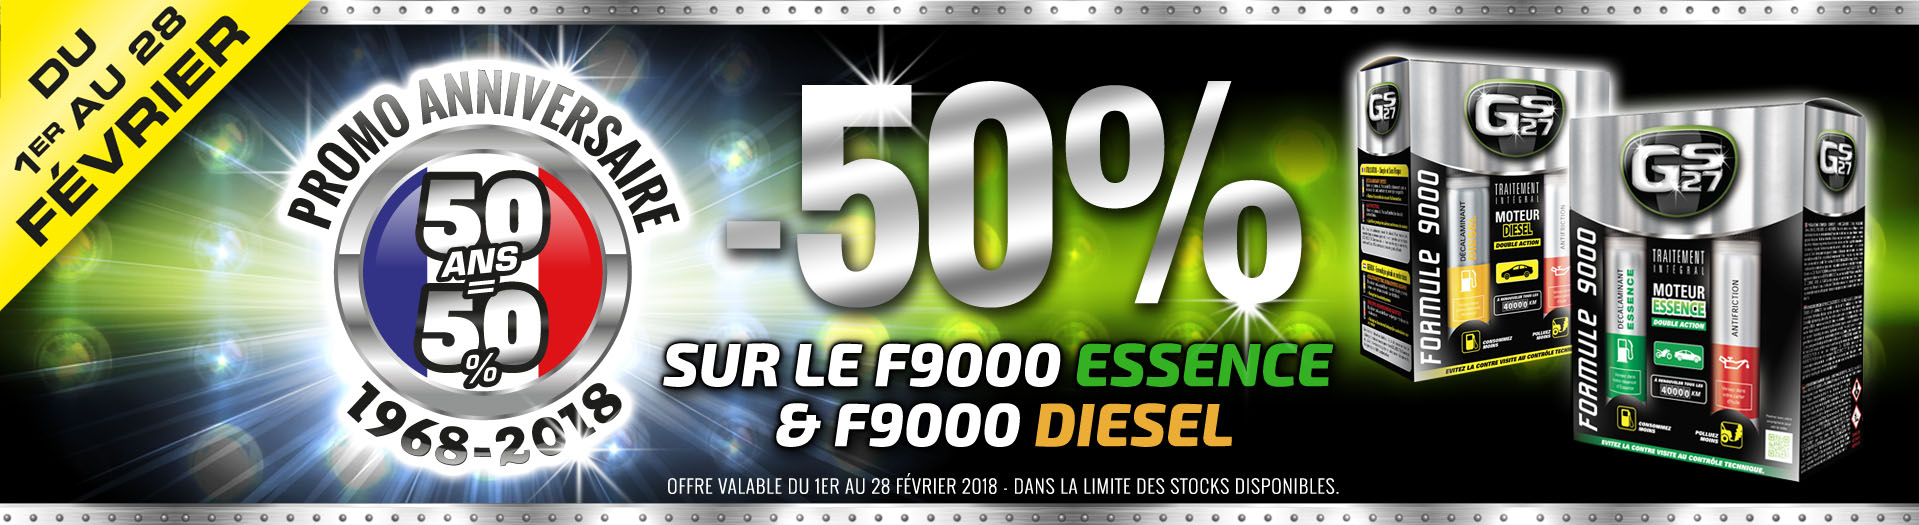 OFFRE SPECIALE 50 ANS